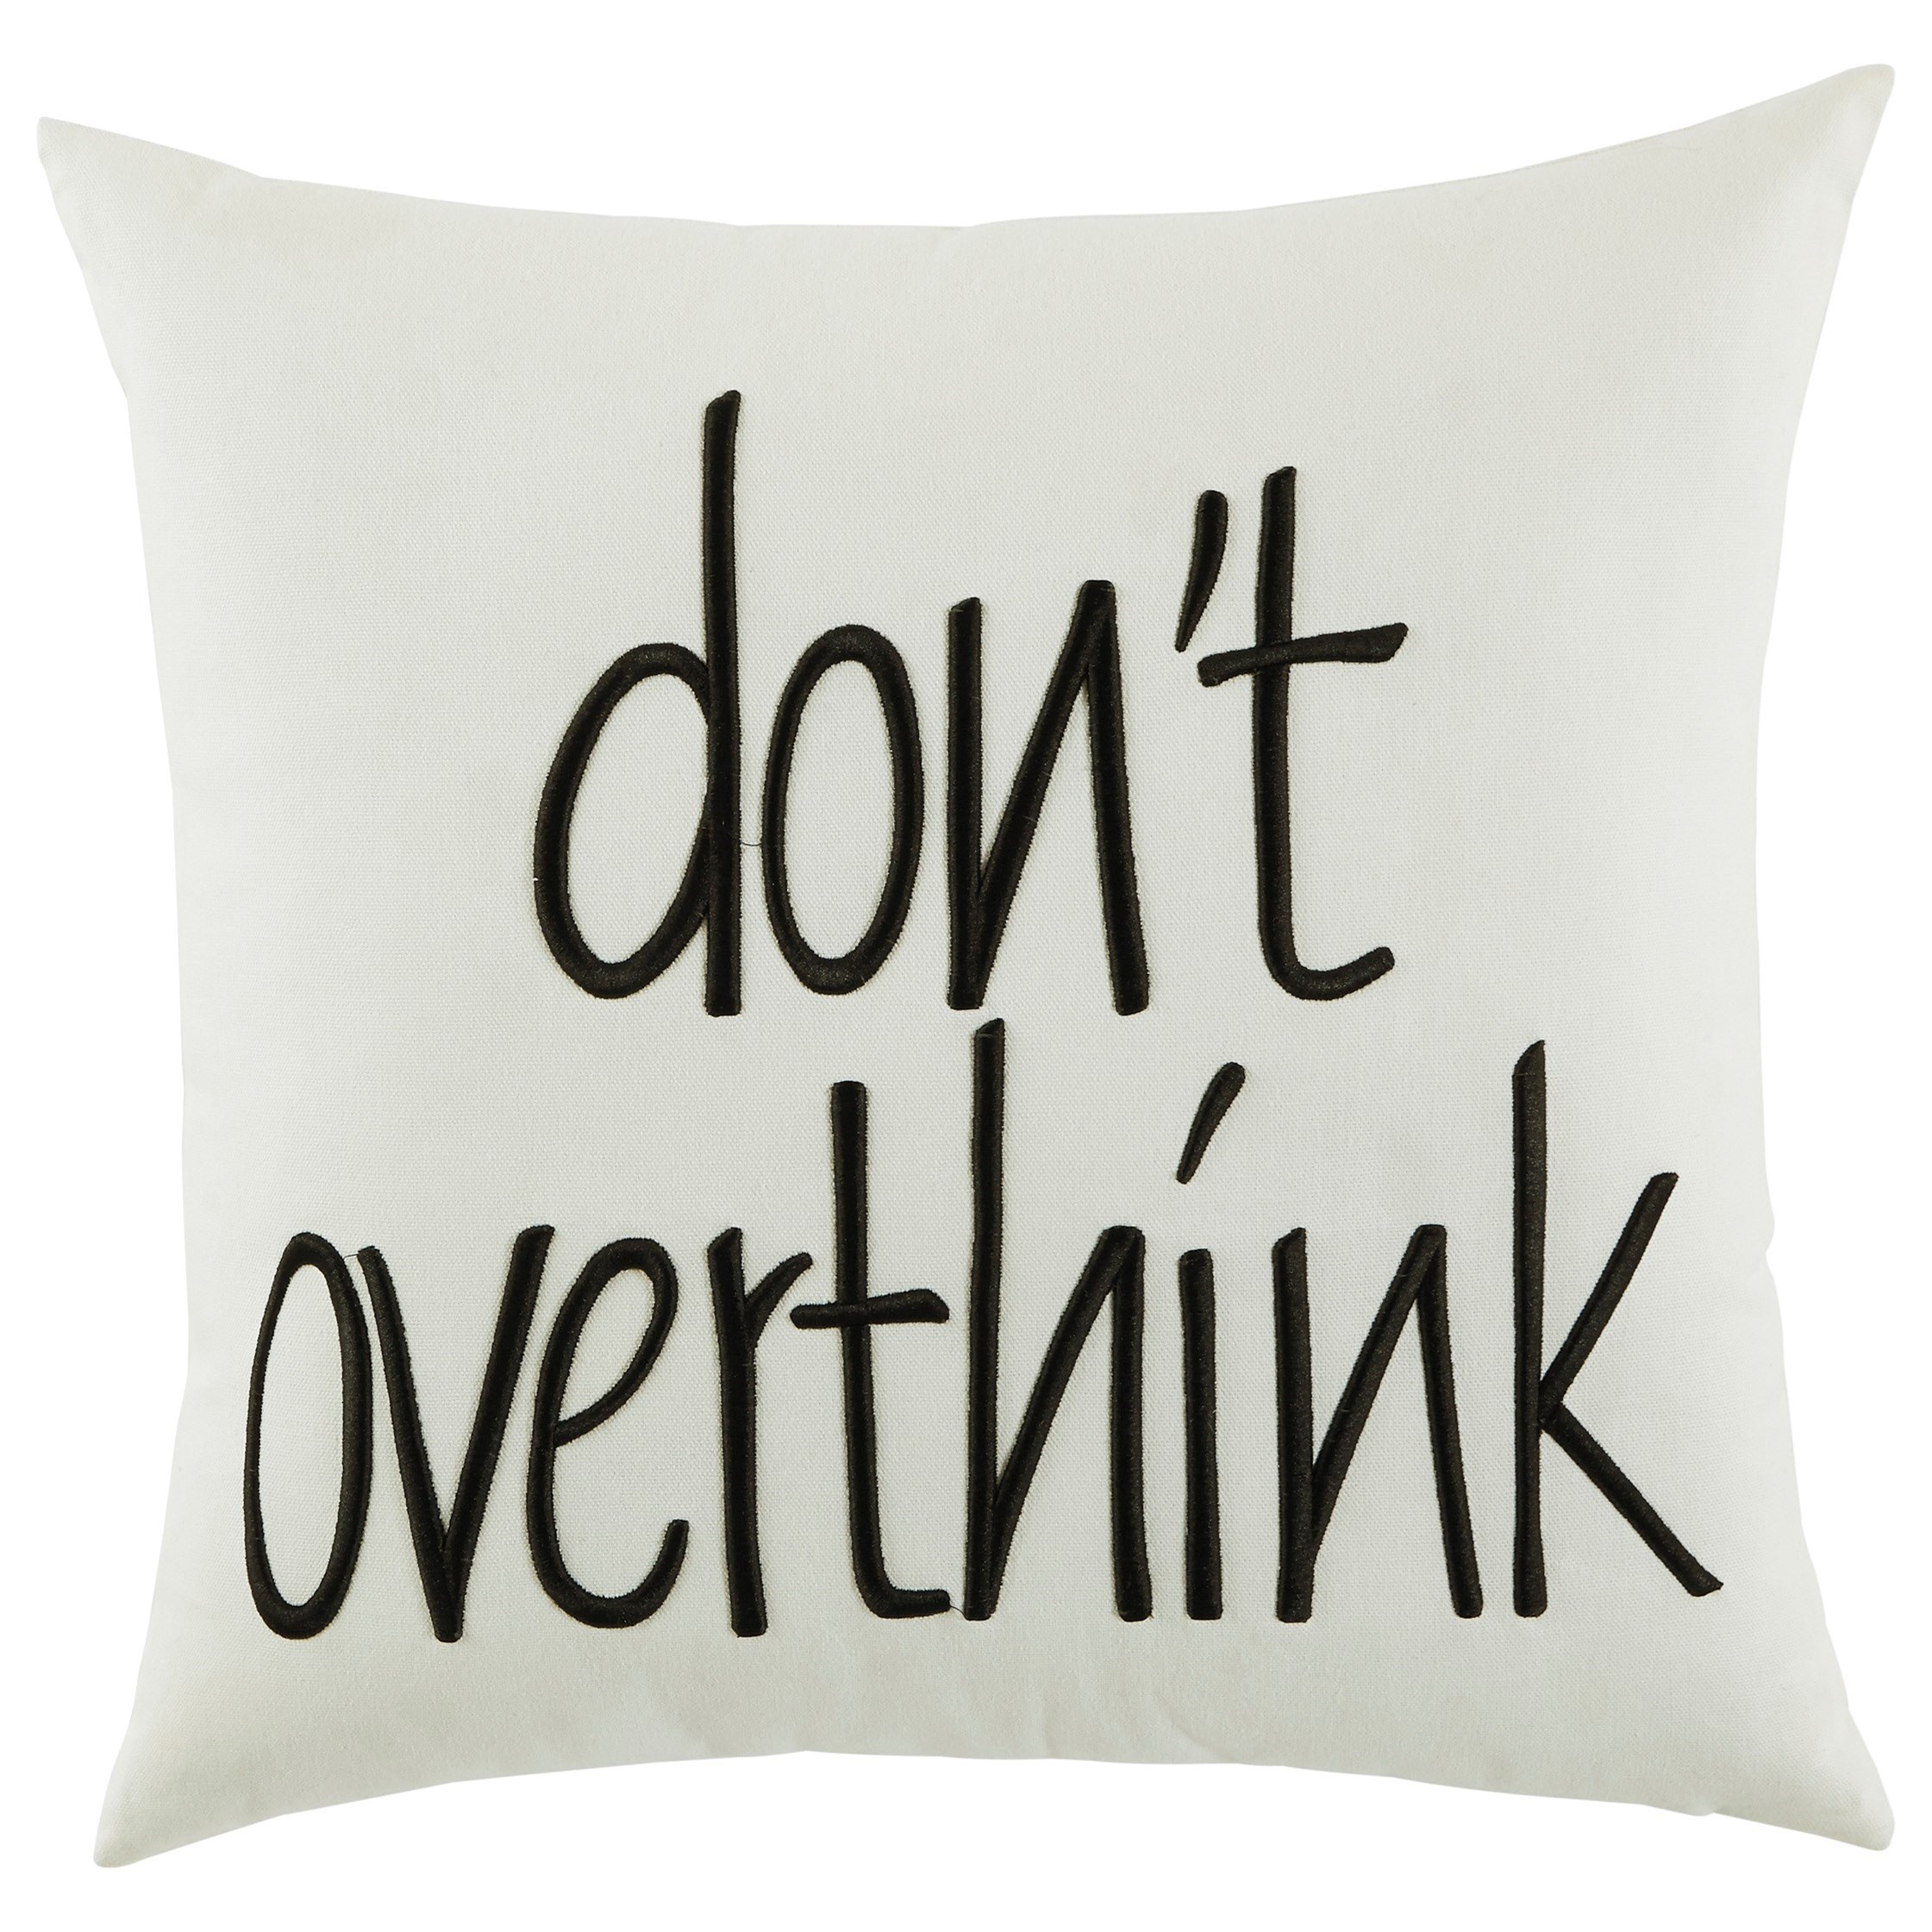 Signature Design by Ashley Pillows Don't Overthink White Pillow - Item Number: A1000728P